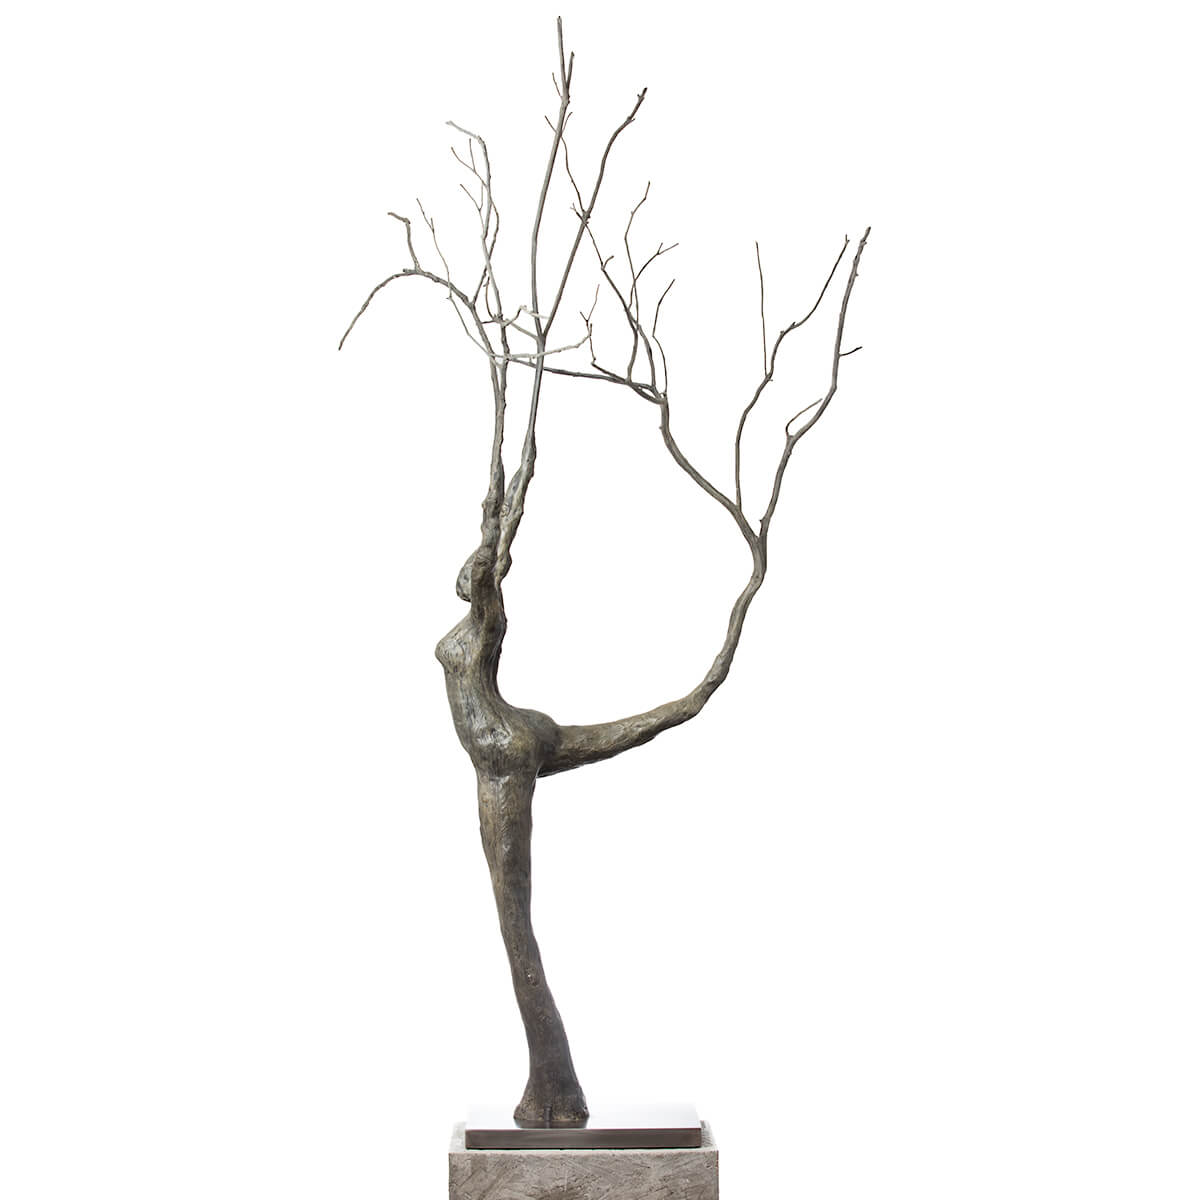 Robert-Helle-Sculpture-Gallery-Abstract-Lady-in-the-Tree-1-1200x1200